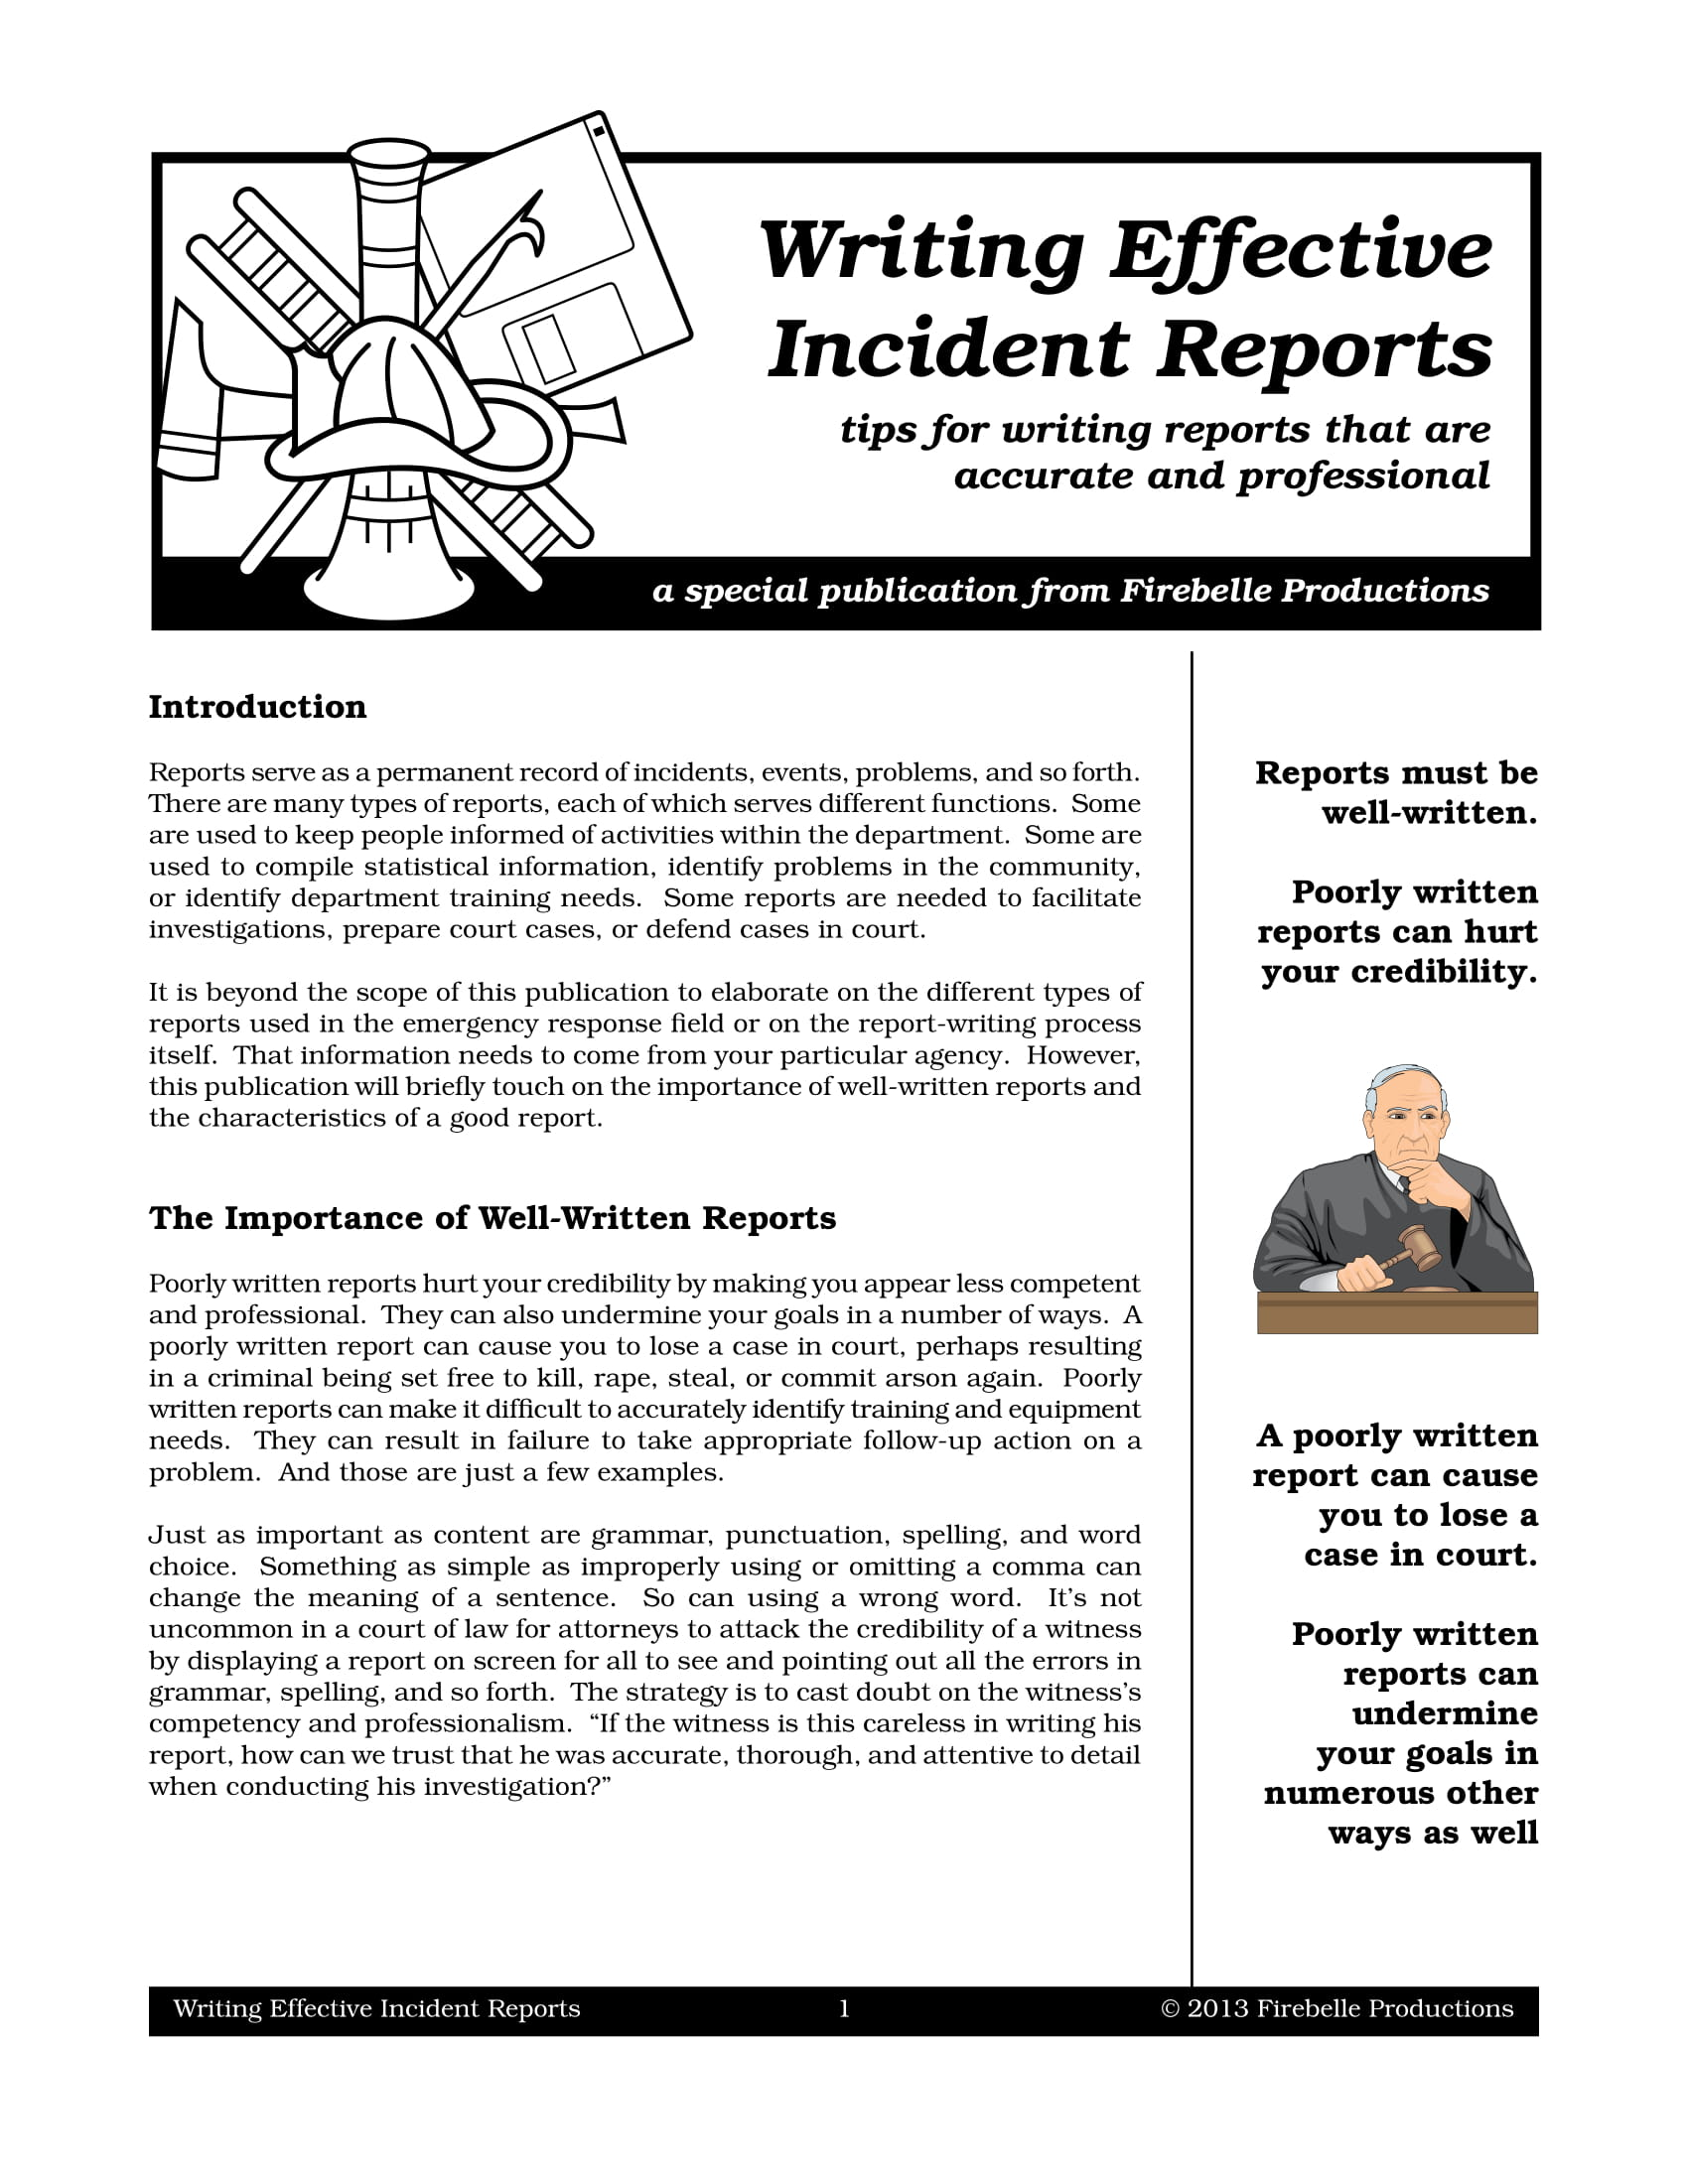 effective incident report writing guidelines example 01